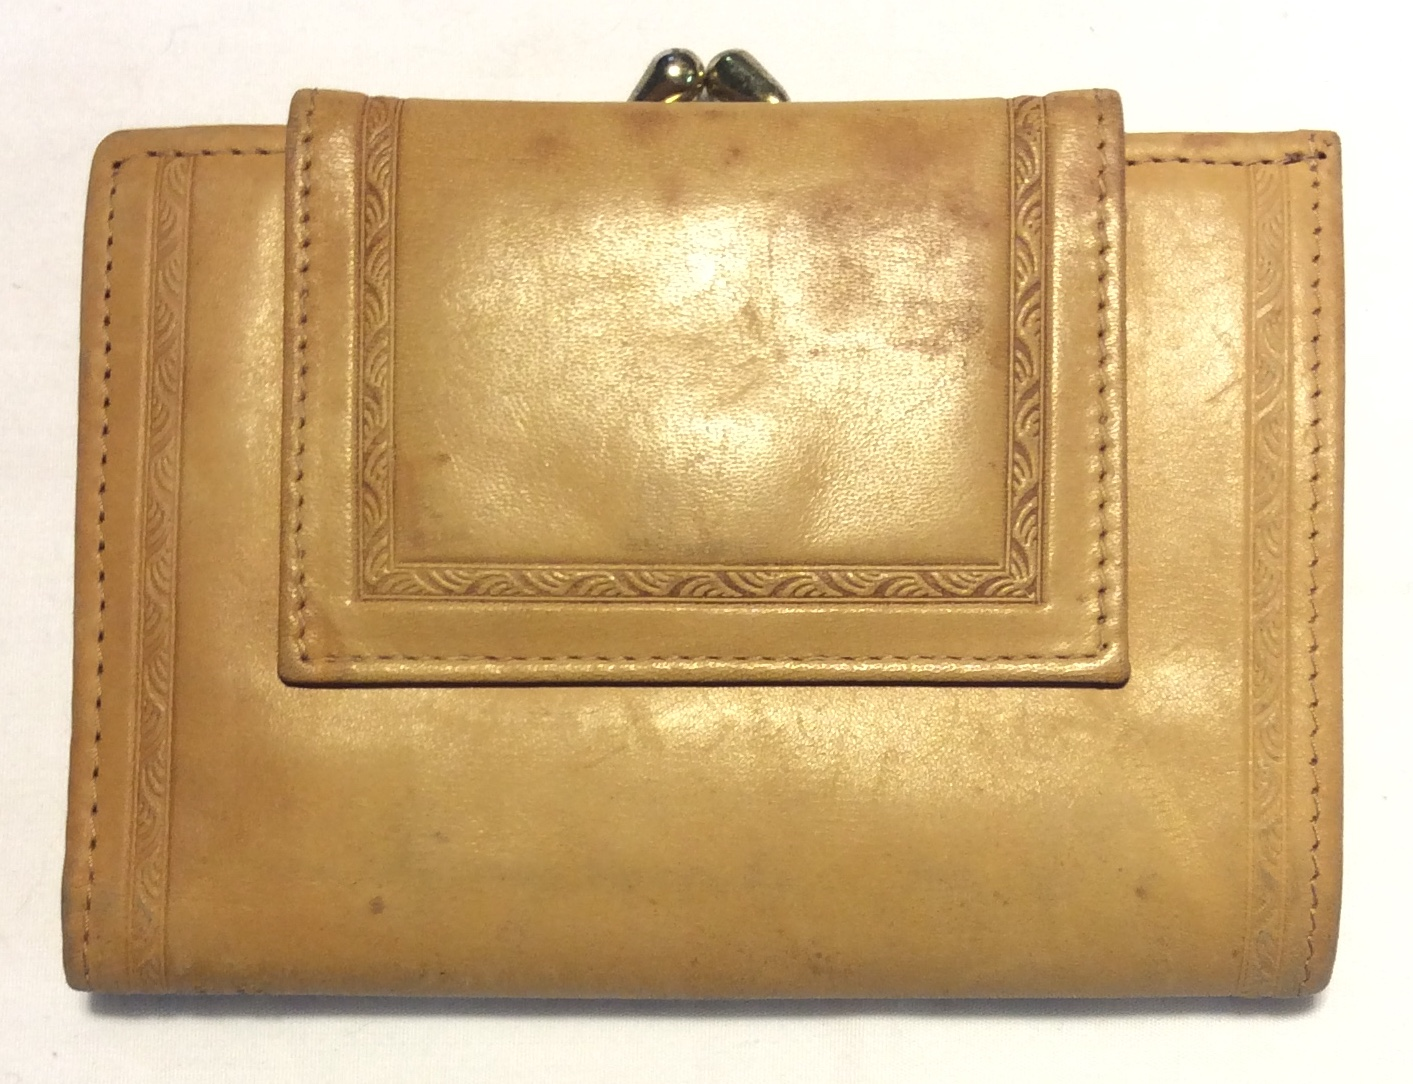 Buxton Thin beige leather wallet